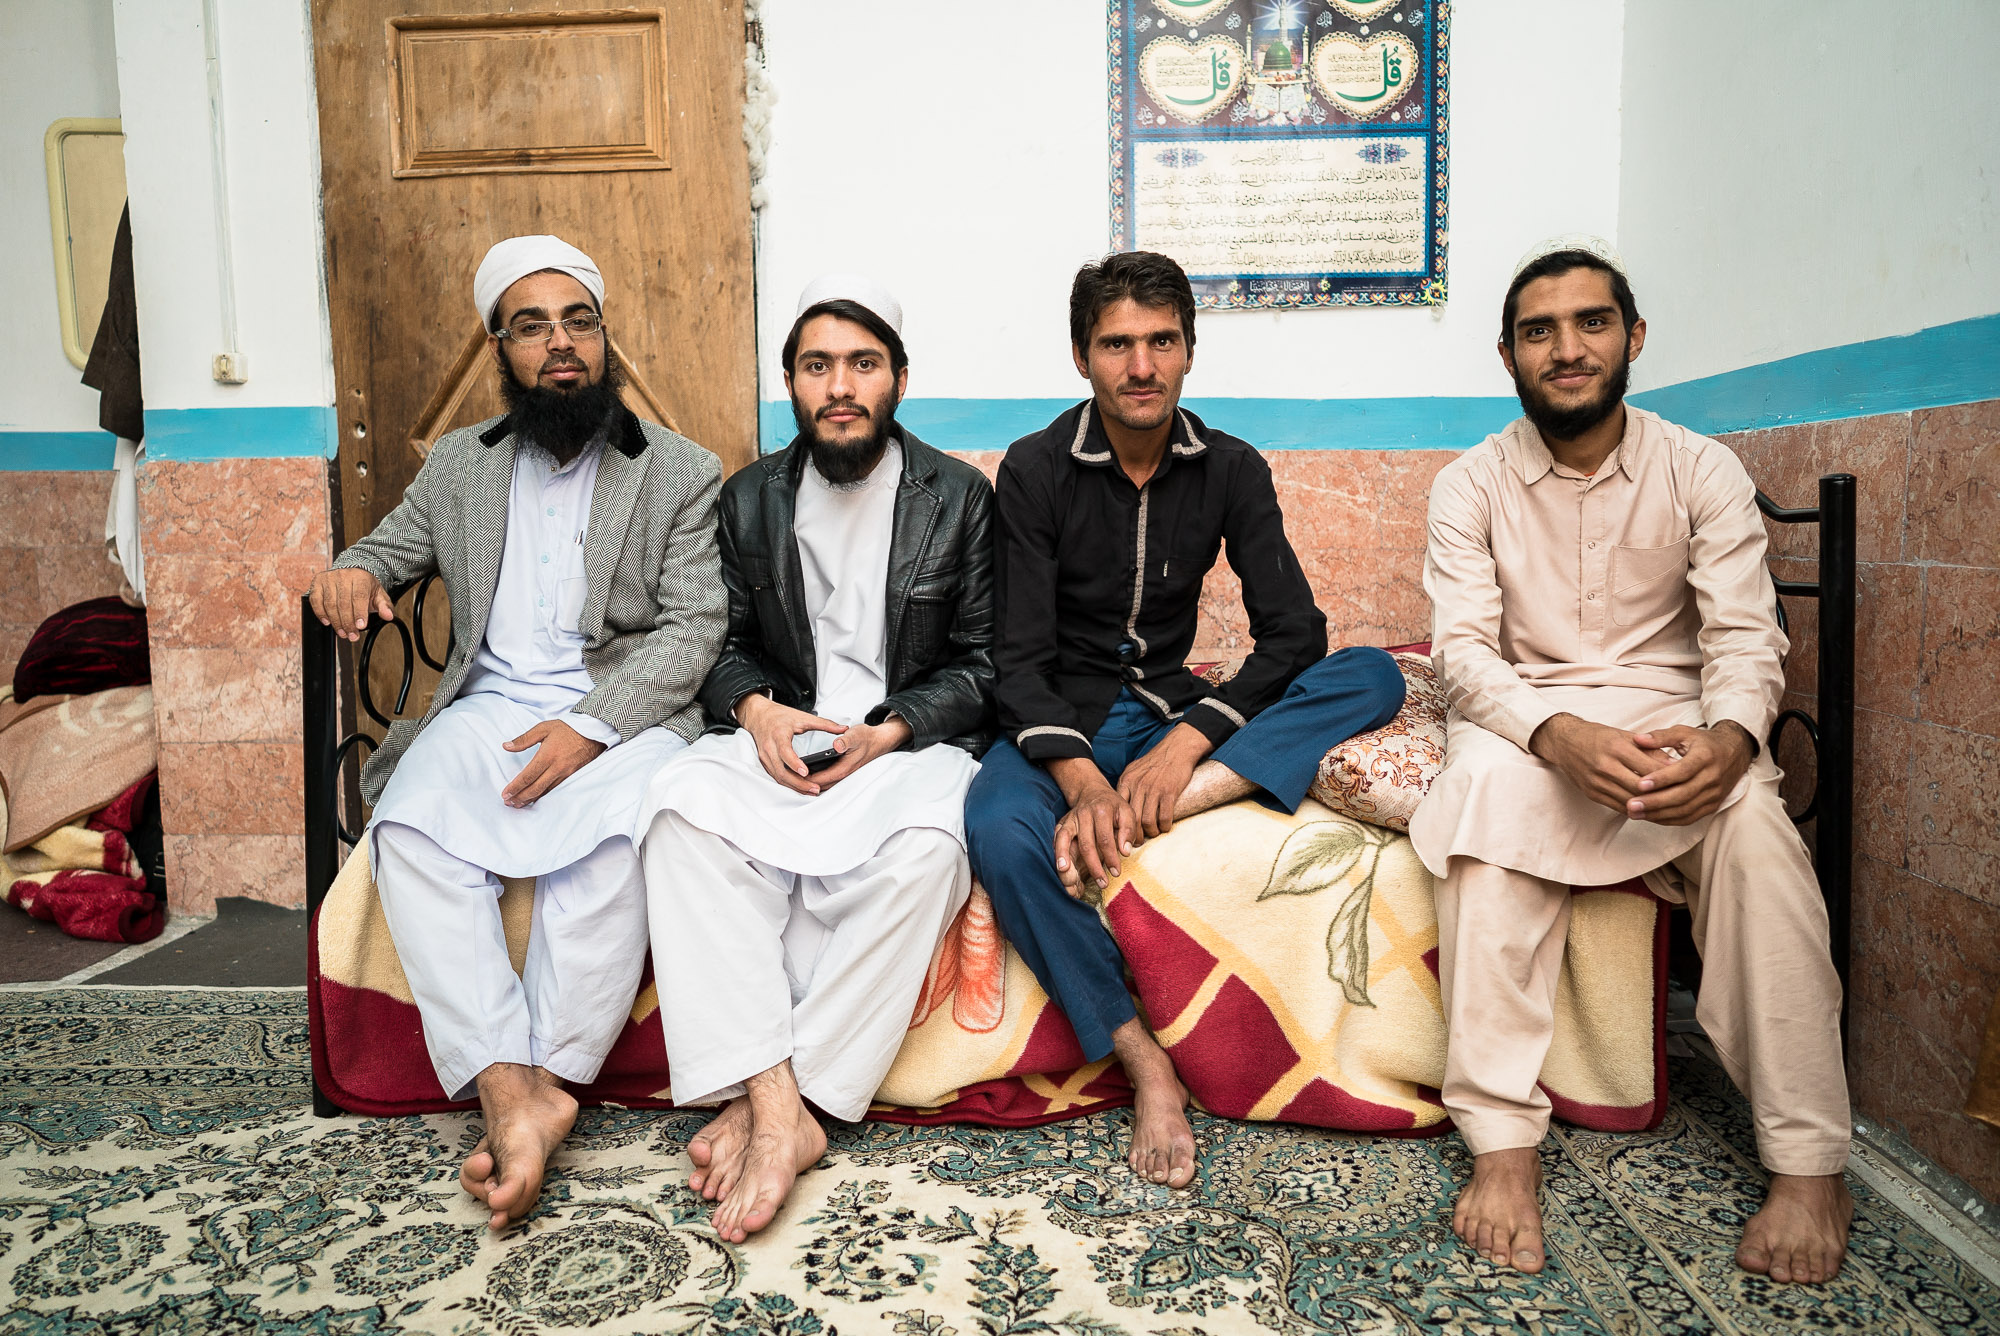 the madrasa guys